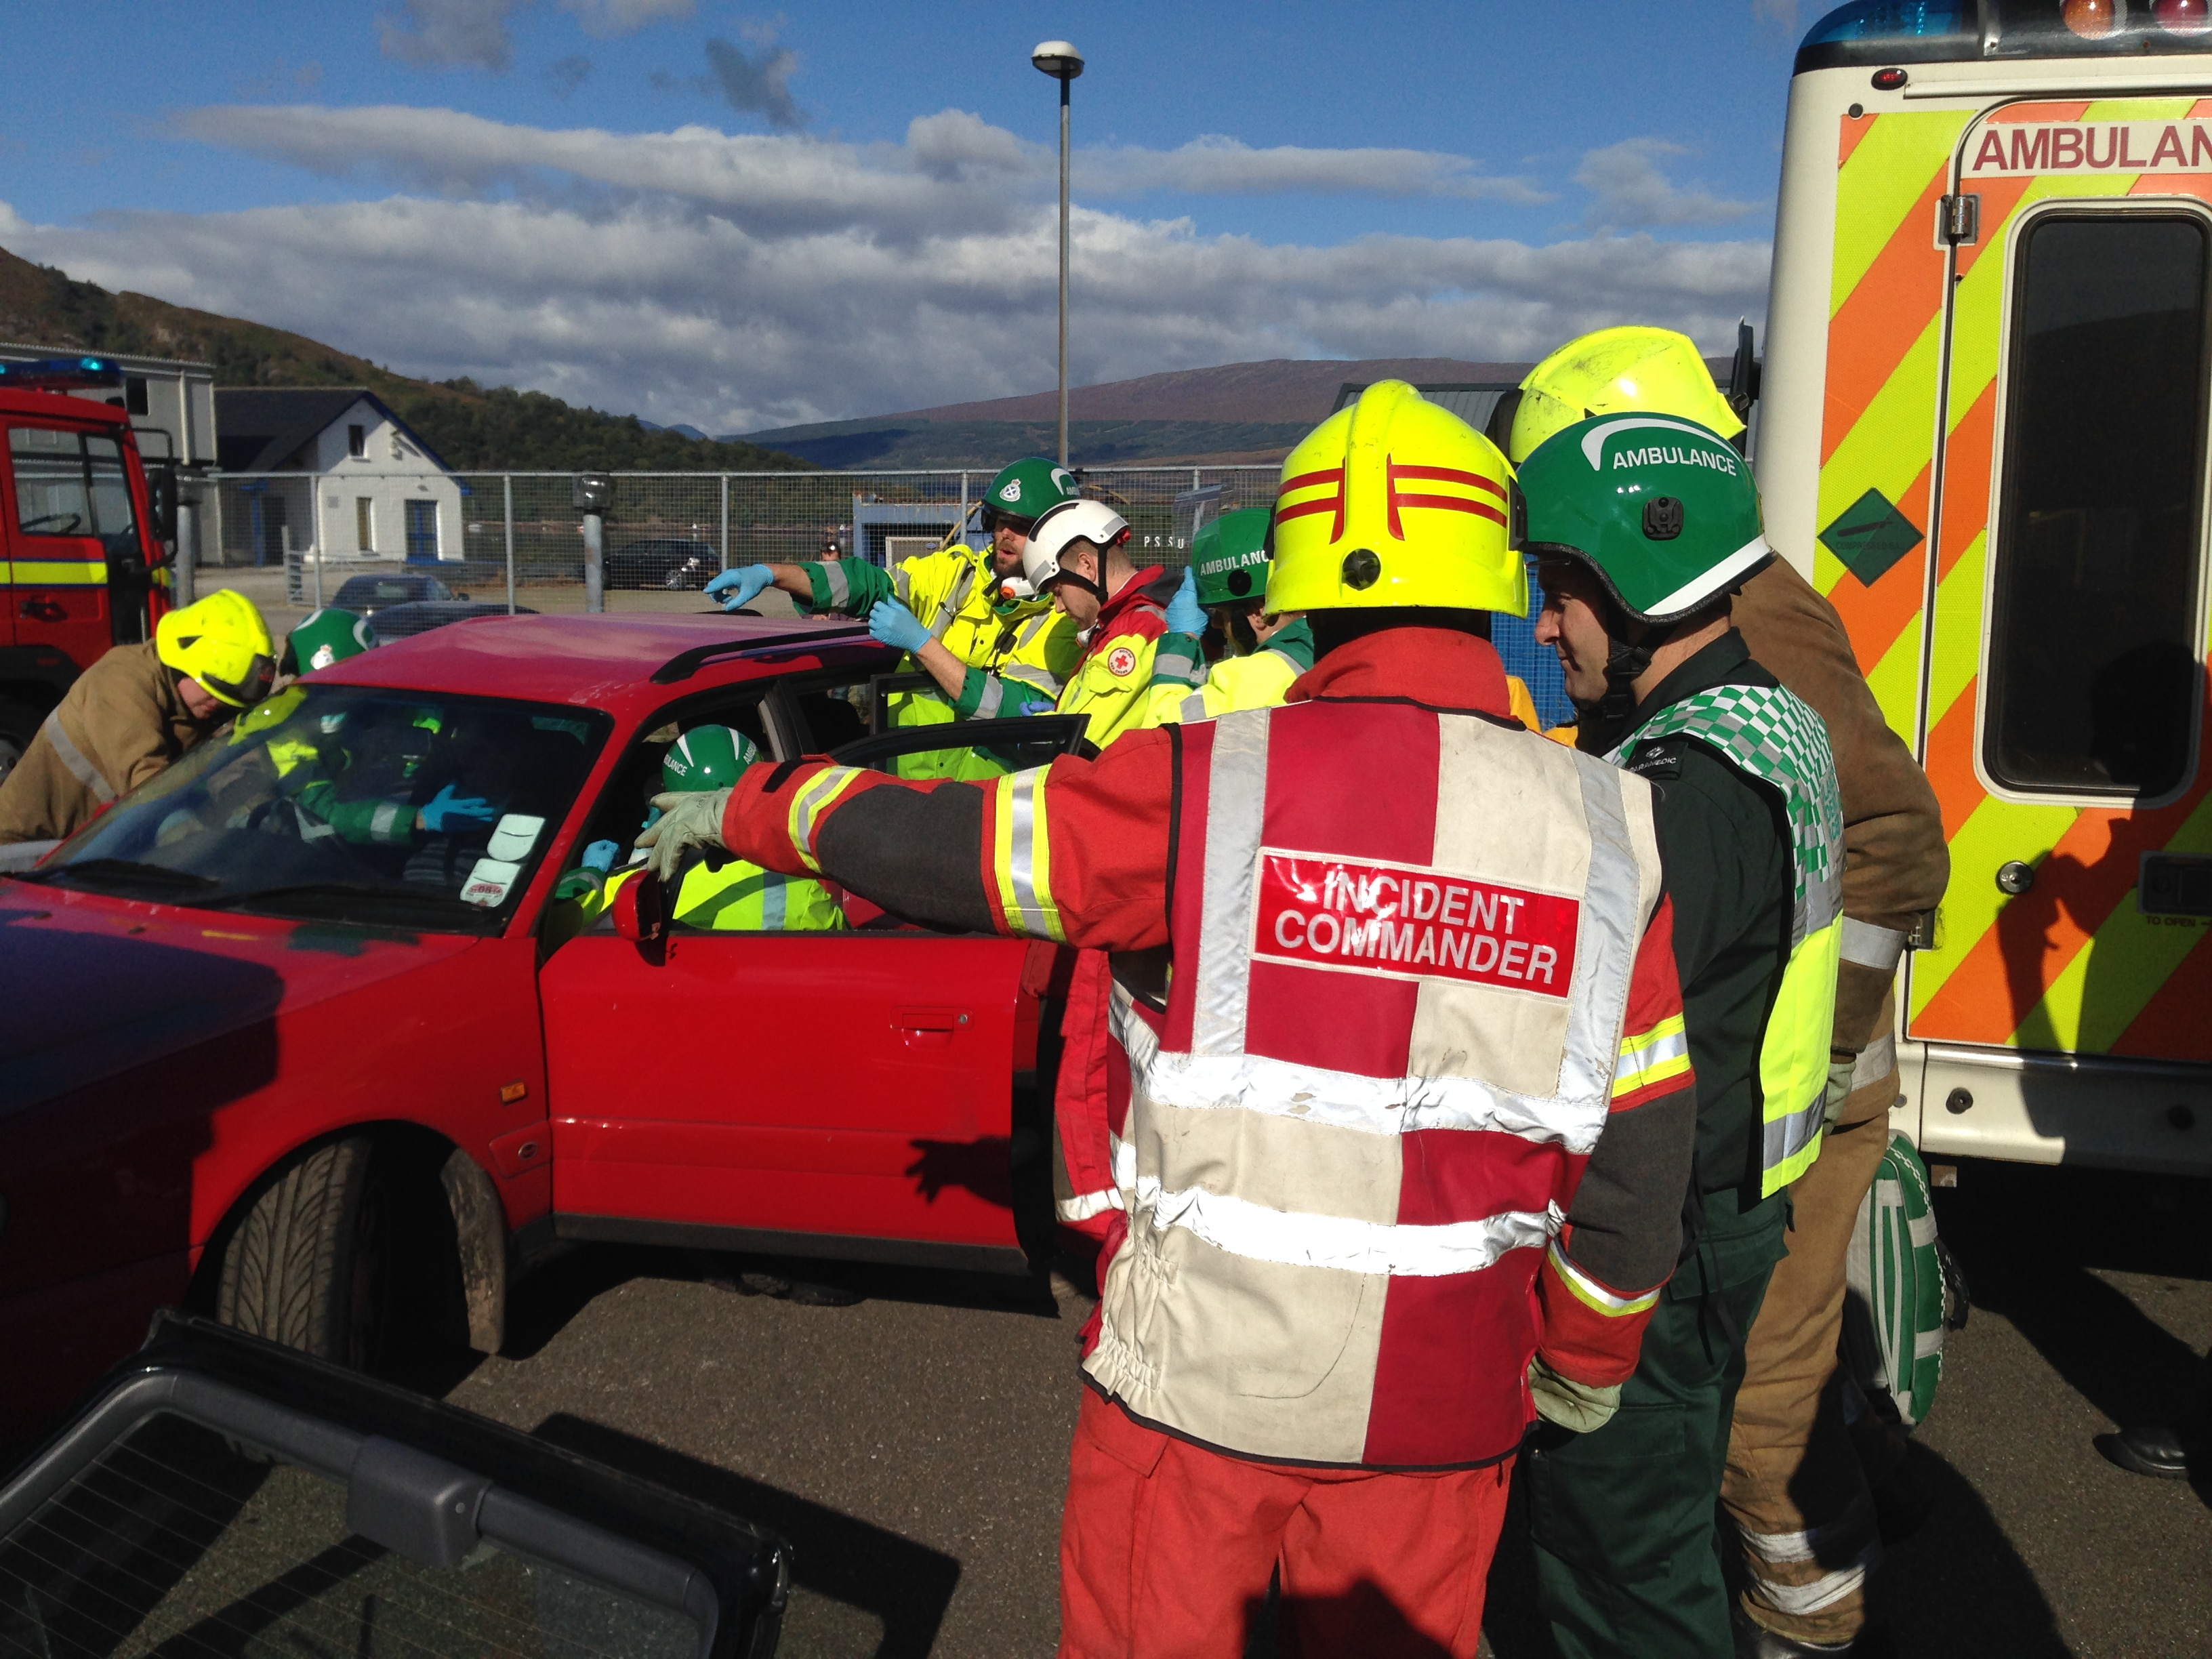 Multi-agency event in Lochaber a success